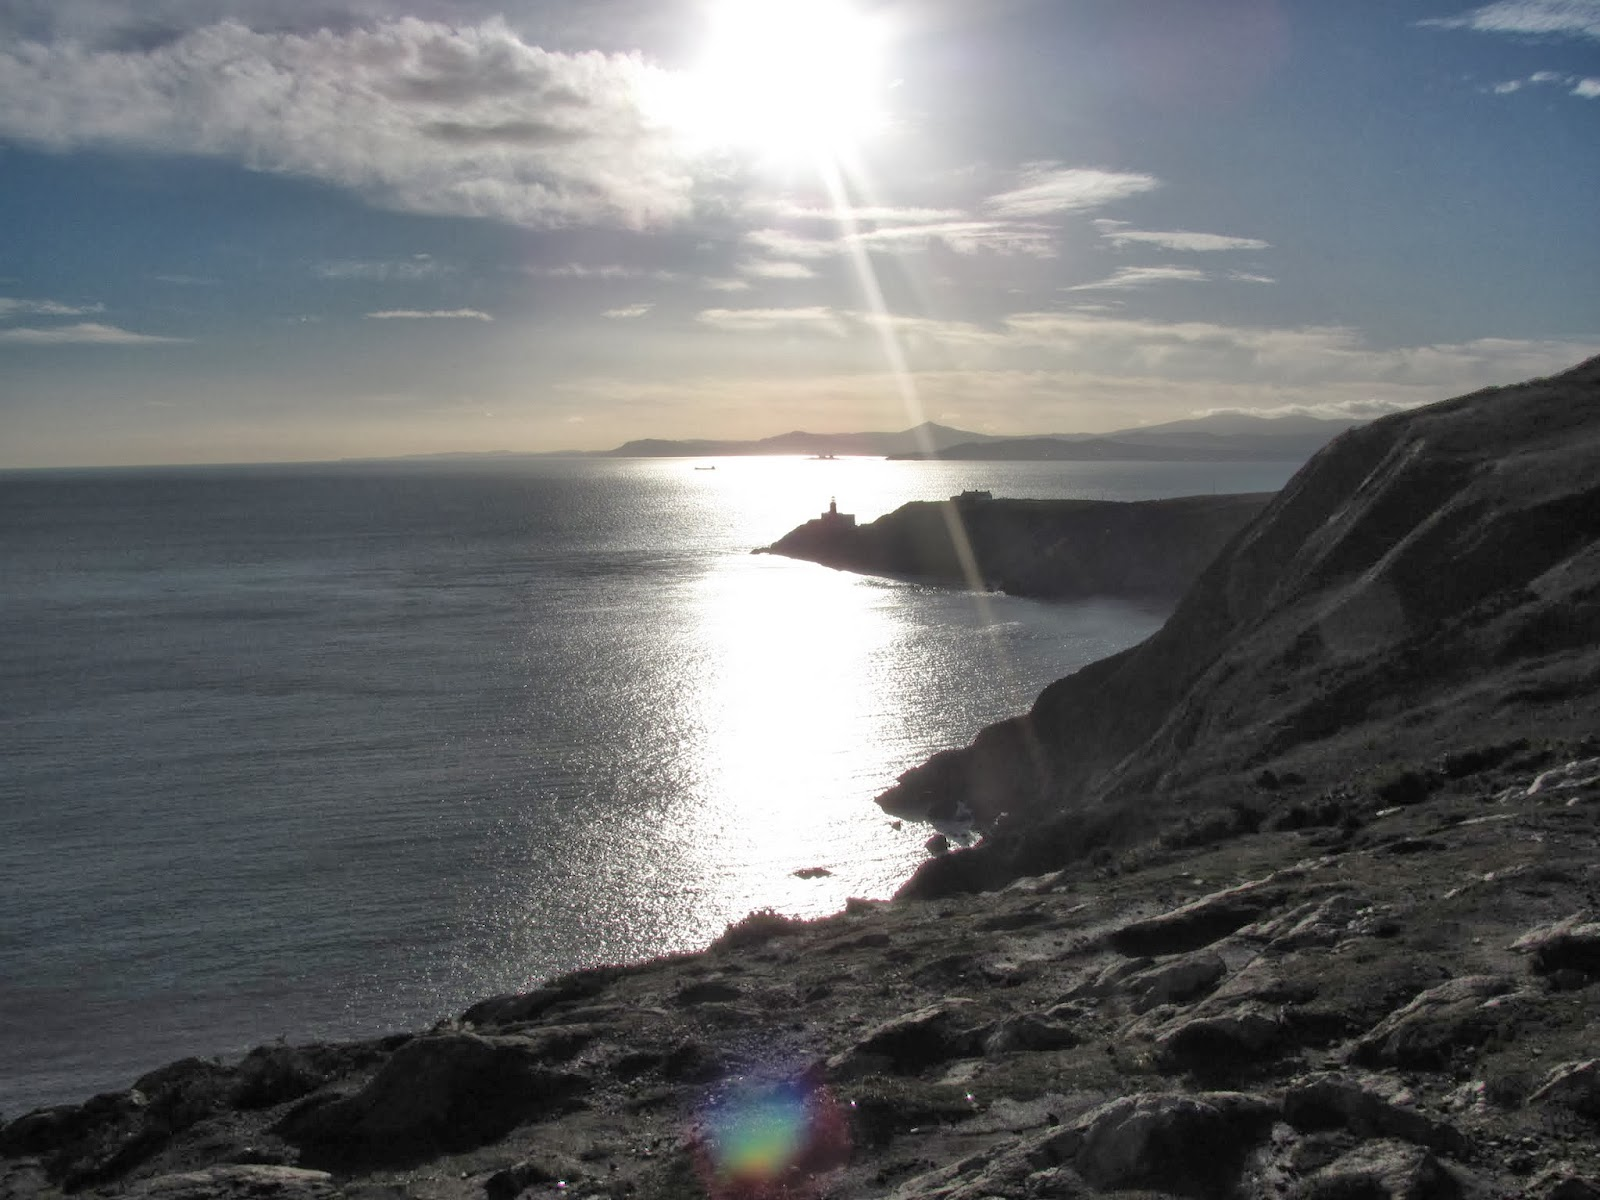 Bright Sun Reflection on the sea in Howth, Co. Dublin, Ireland